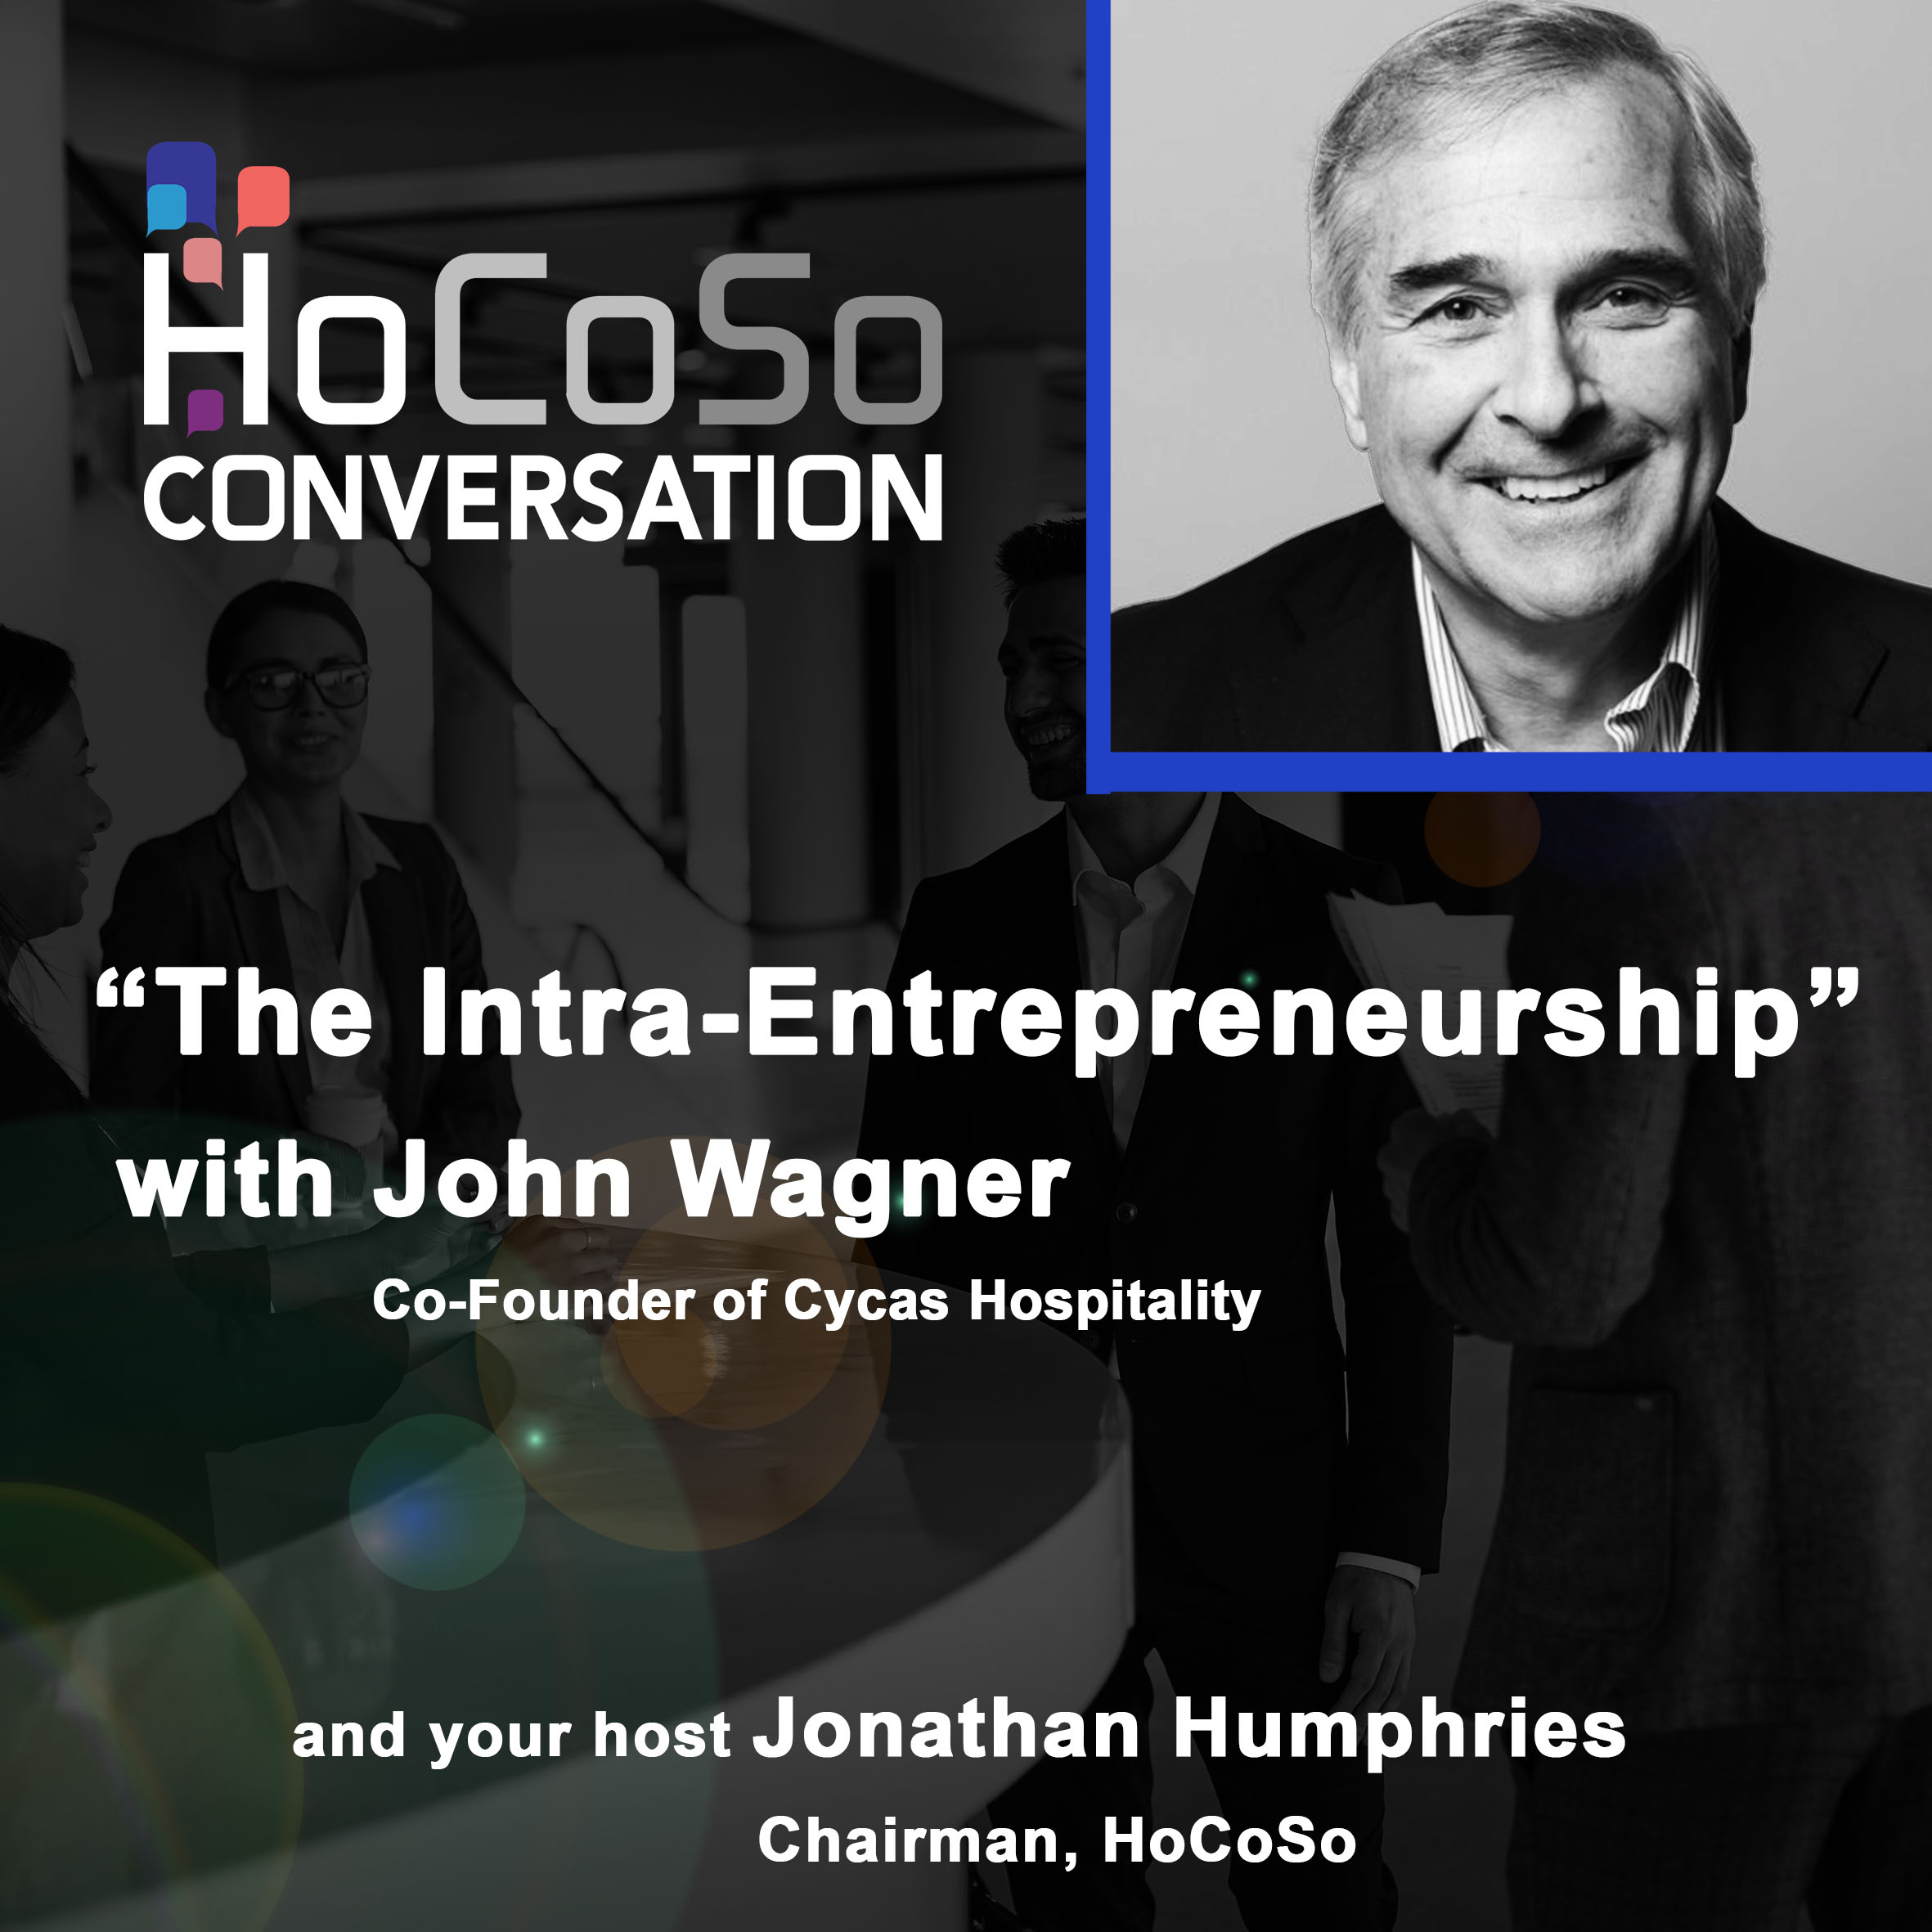 The Intra-Entrepreneurship - with Sean Worker